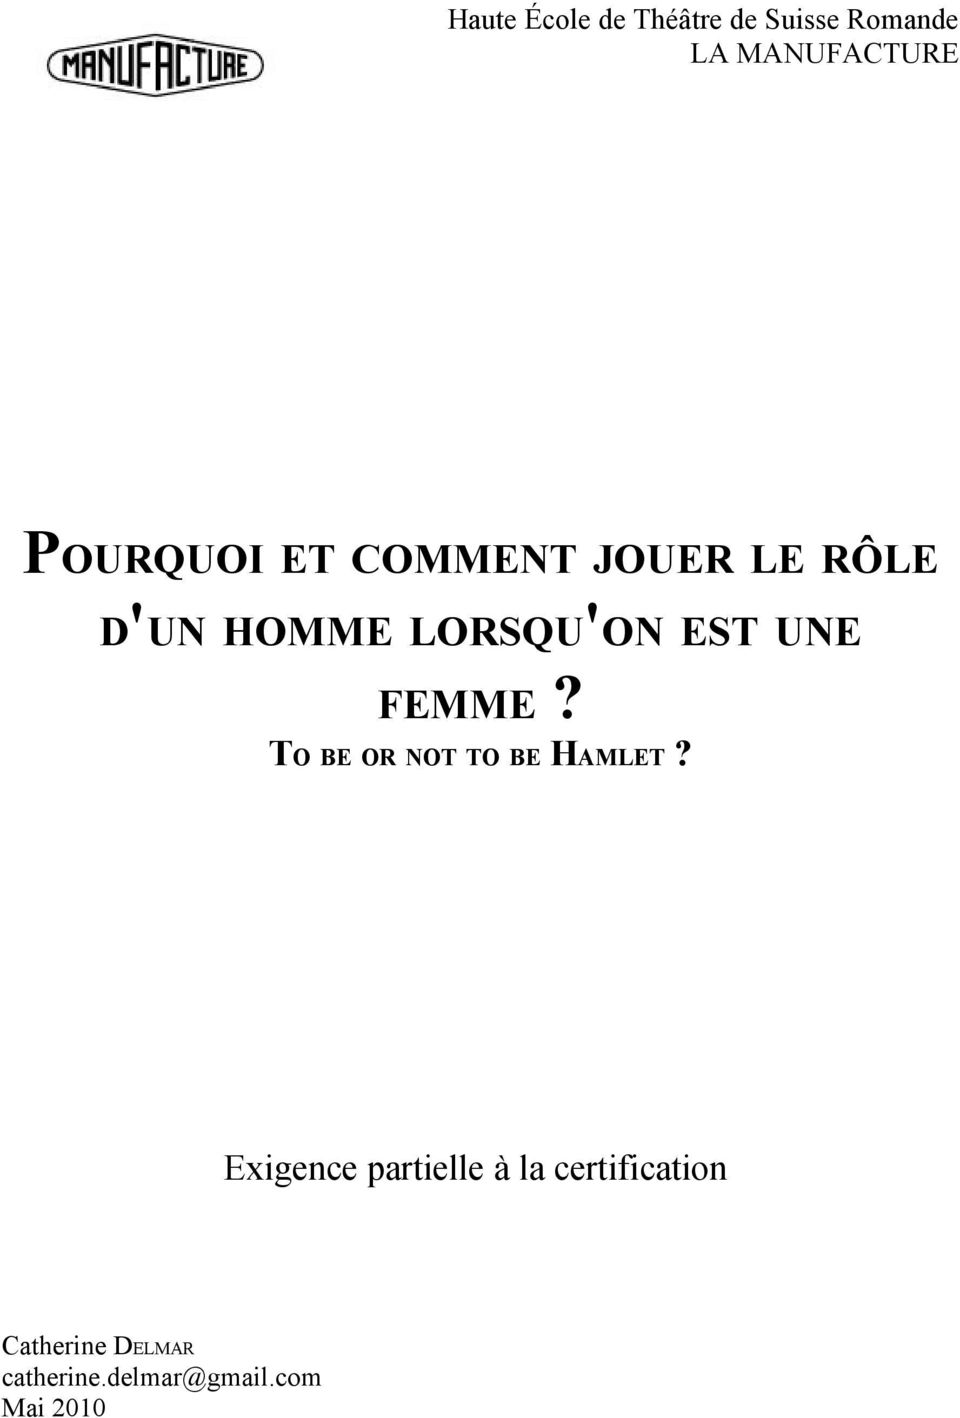 UNE FEMME? TO BE OR NOT TO BE HAMLET?